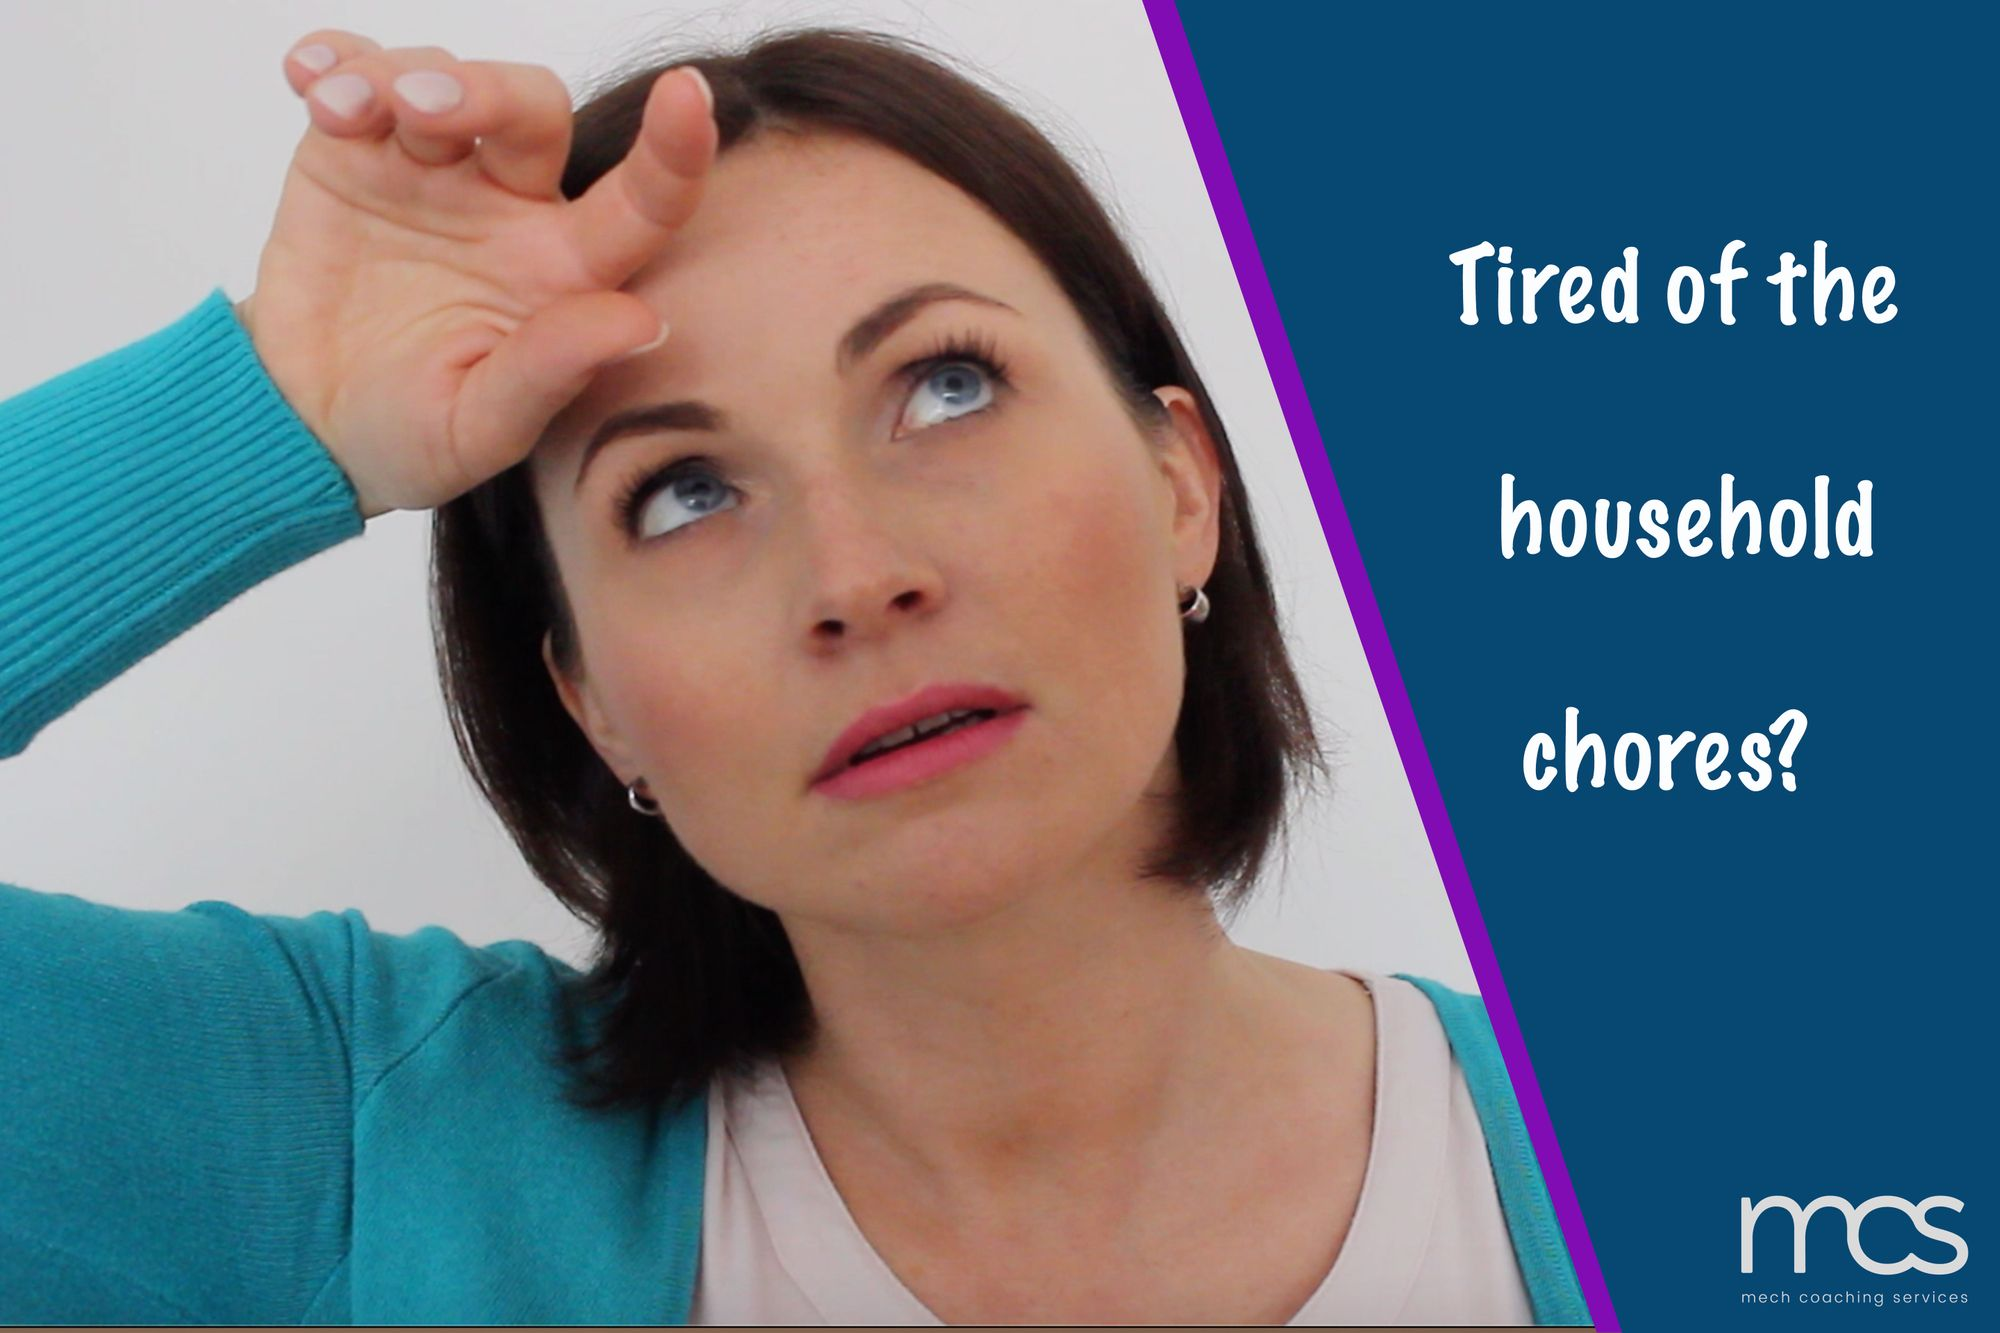 Are you tired of the household chores?